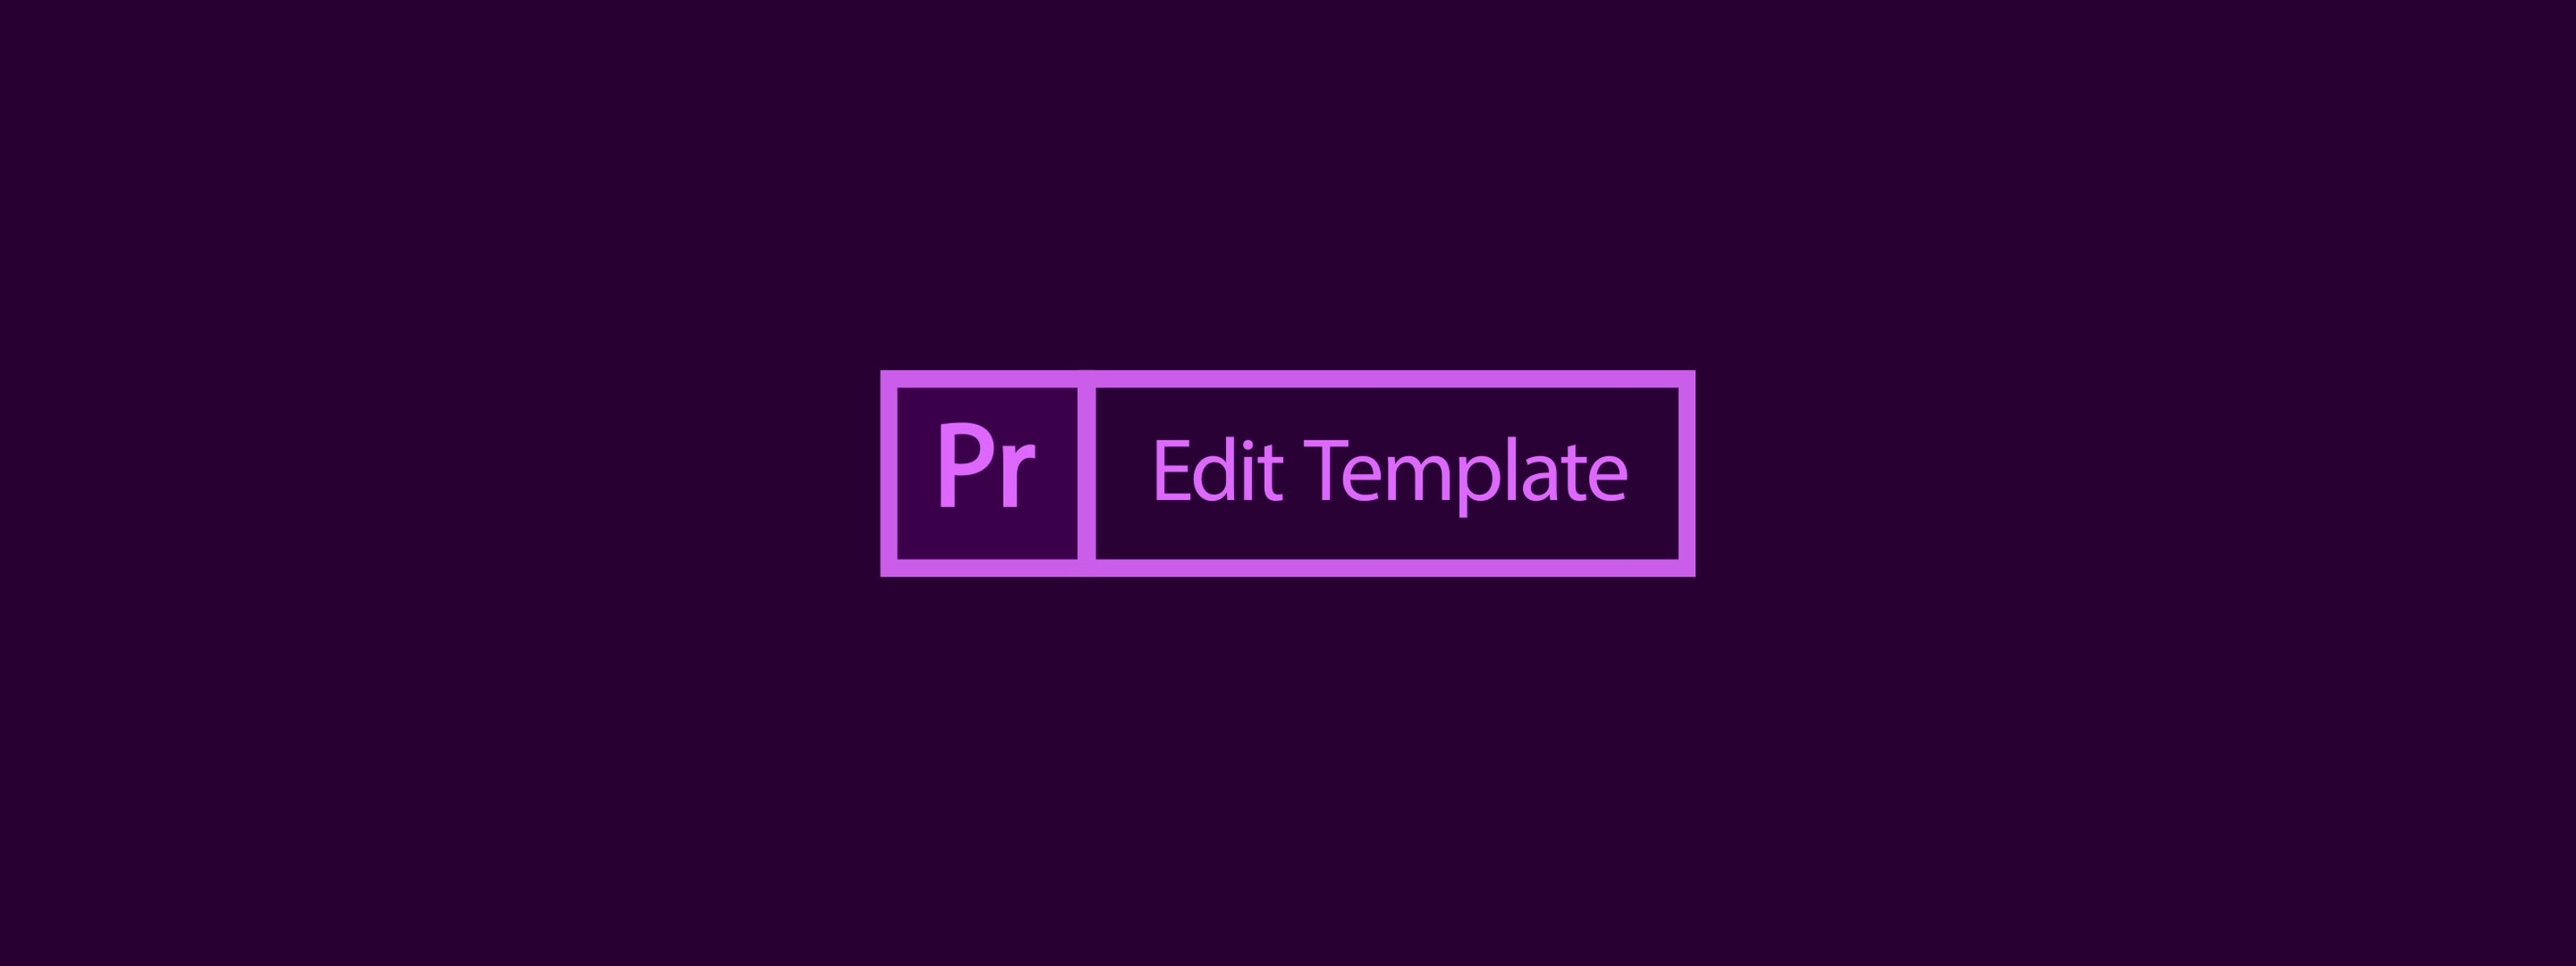 download premiere pro effects free